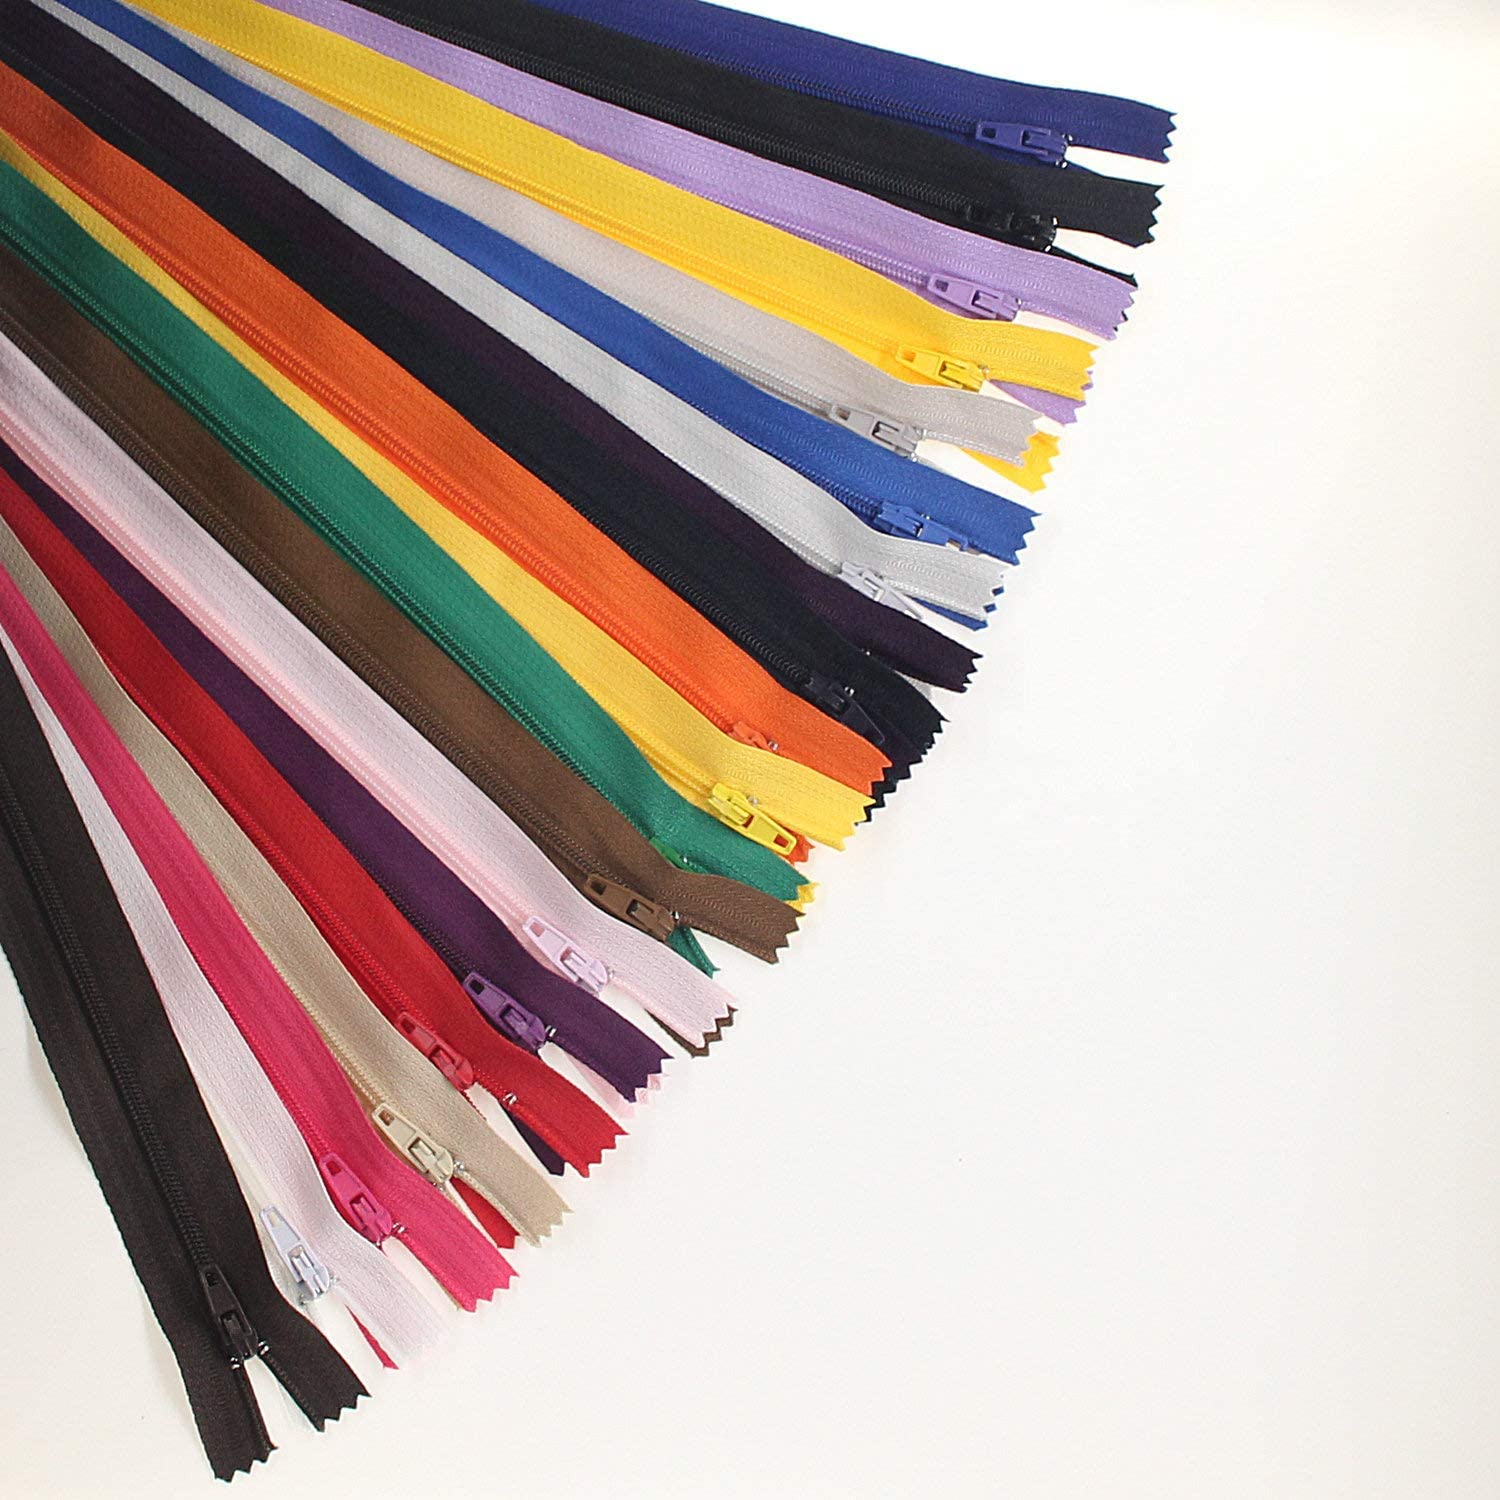 WKXFJJWZC 80pcs 12 Inch 30cm Nylon Coil Zippers for Tailor Sewing Crafts Nylon Zippers Bulk 40 Colors